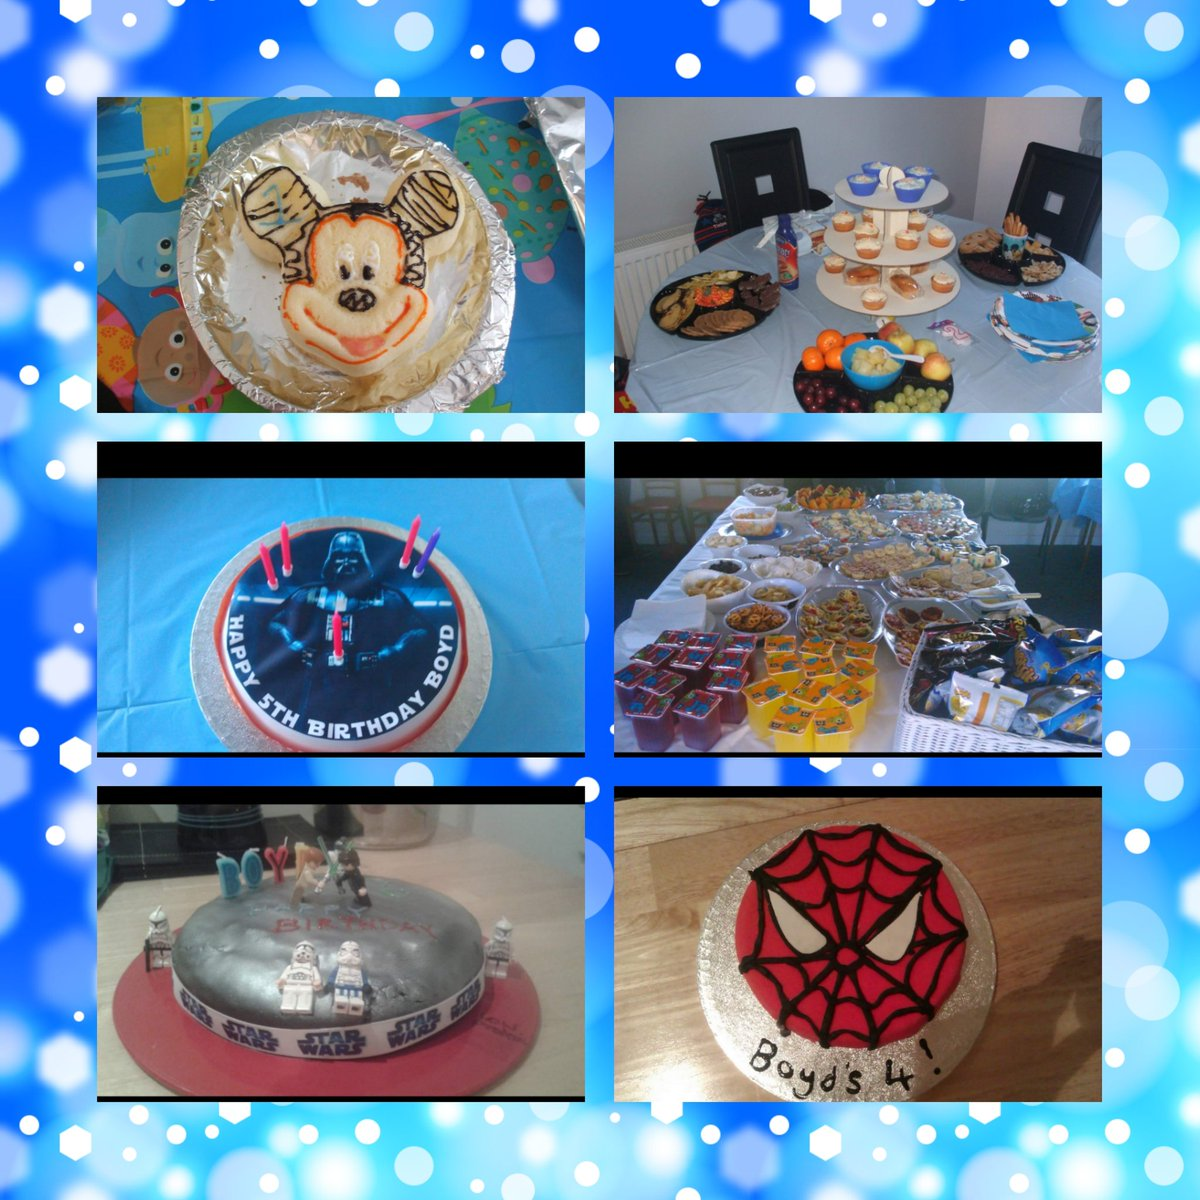 Day 17 Pku Event I actually don&#39;t have any photos from any events we have attended but here&#39;s some photos of our own Pku events Boyds birthdays! Homemade birthday cakes and low protein buffets #pkuawareness #boydsbirthdays #everyoneeatslowprotein #thedaysoffewexchanges<br>http://pic.twitter.com/DVtYvXDHRp